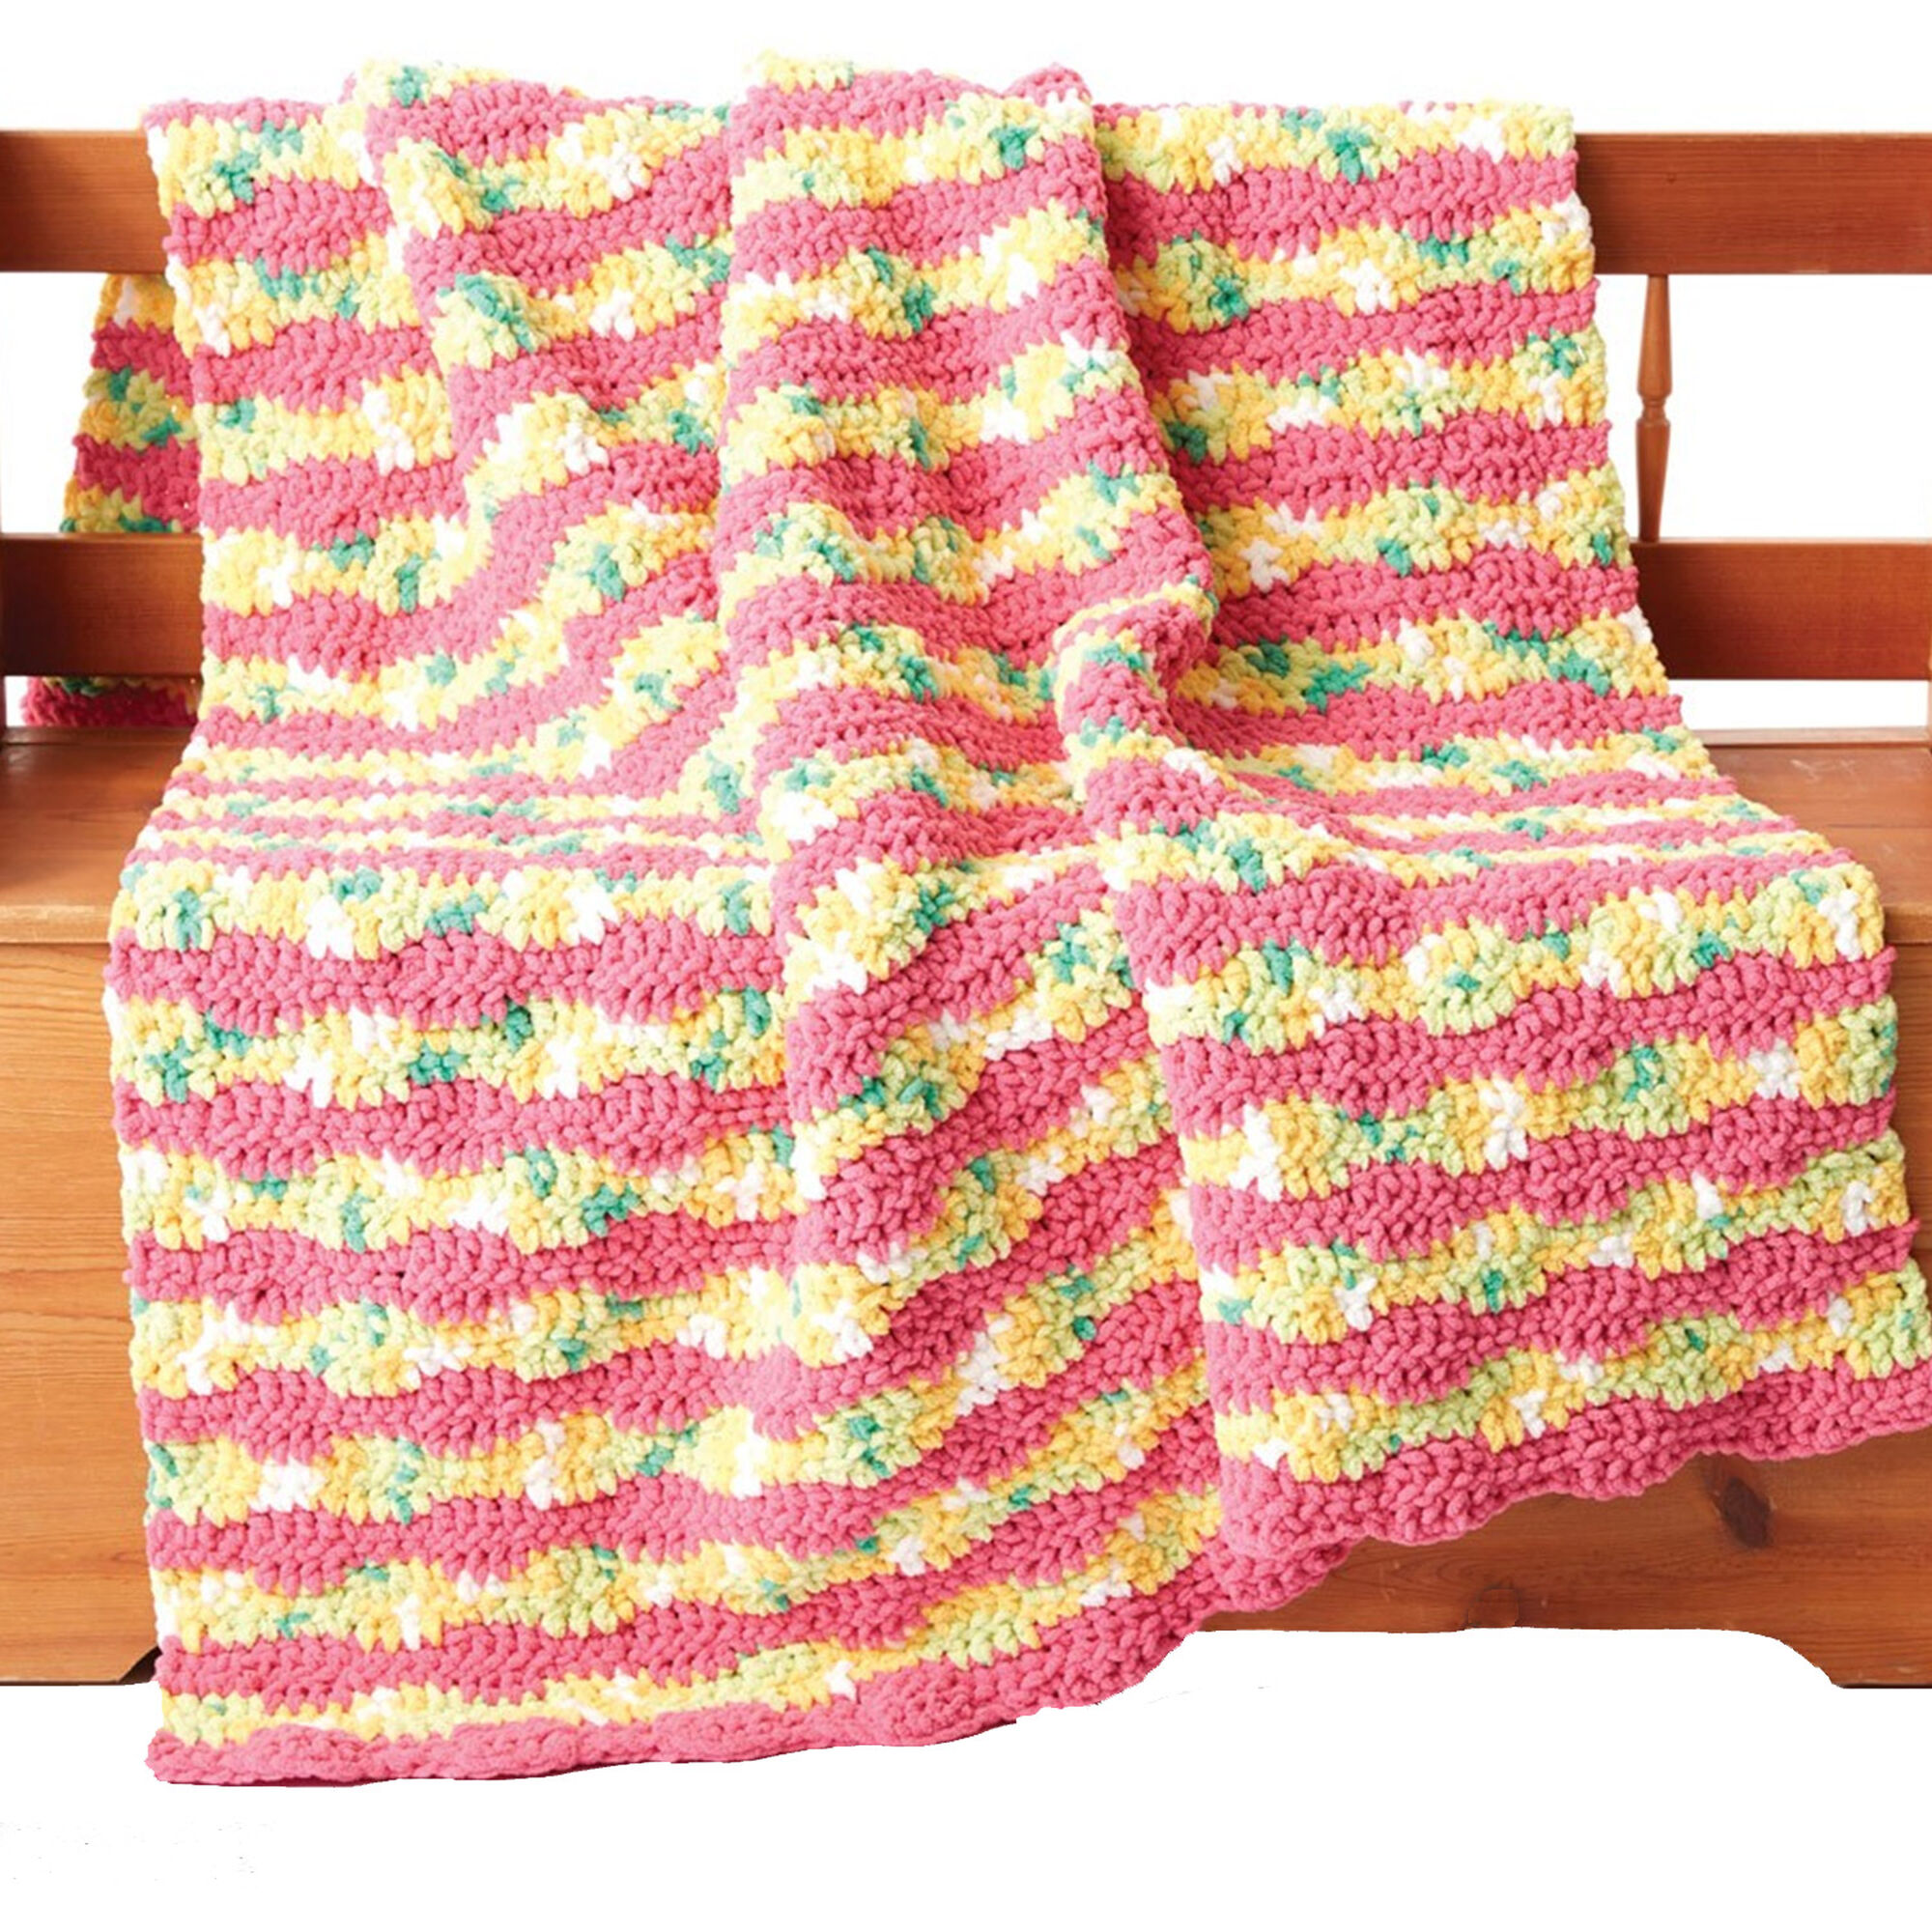 Bernat Blanket Yarn Crochet Patterns Simple Design Ideas